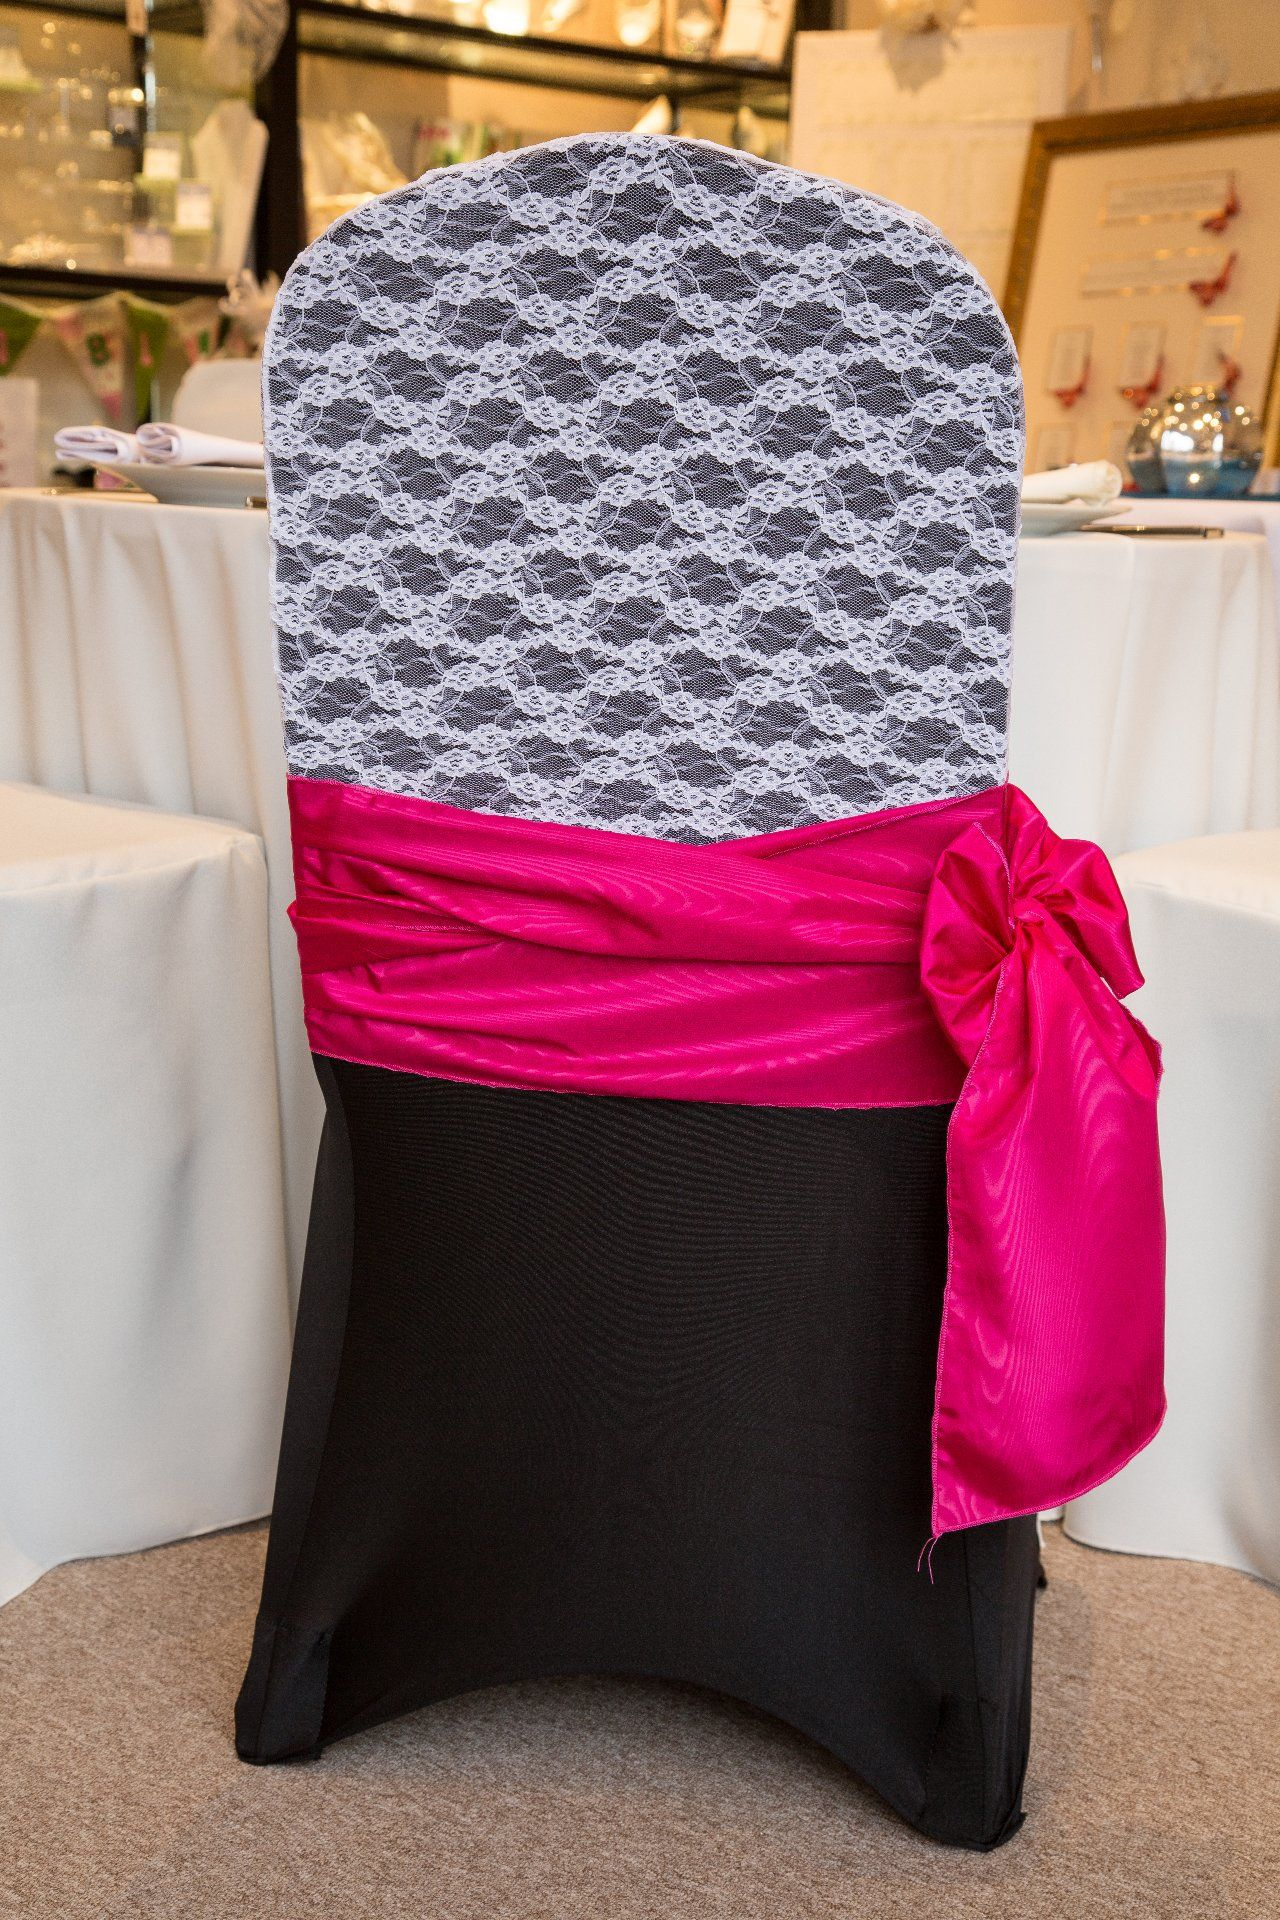 hot pink spandex chair covers desk chairs staples uk pin by dwayla walker on event decor wedding black lace hood and sash http www